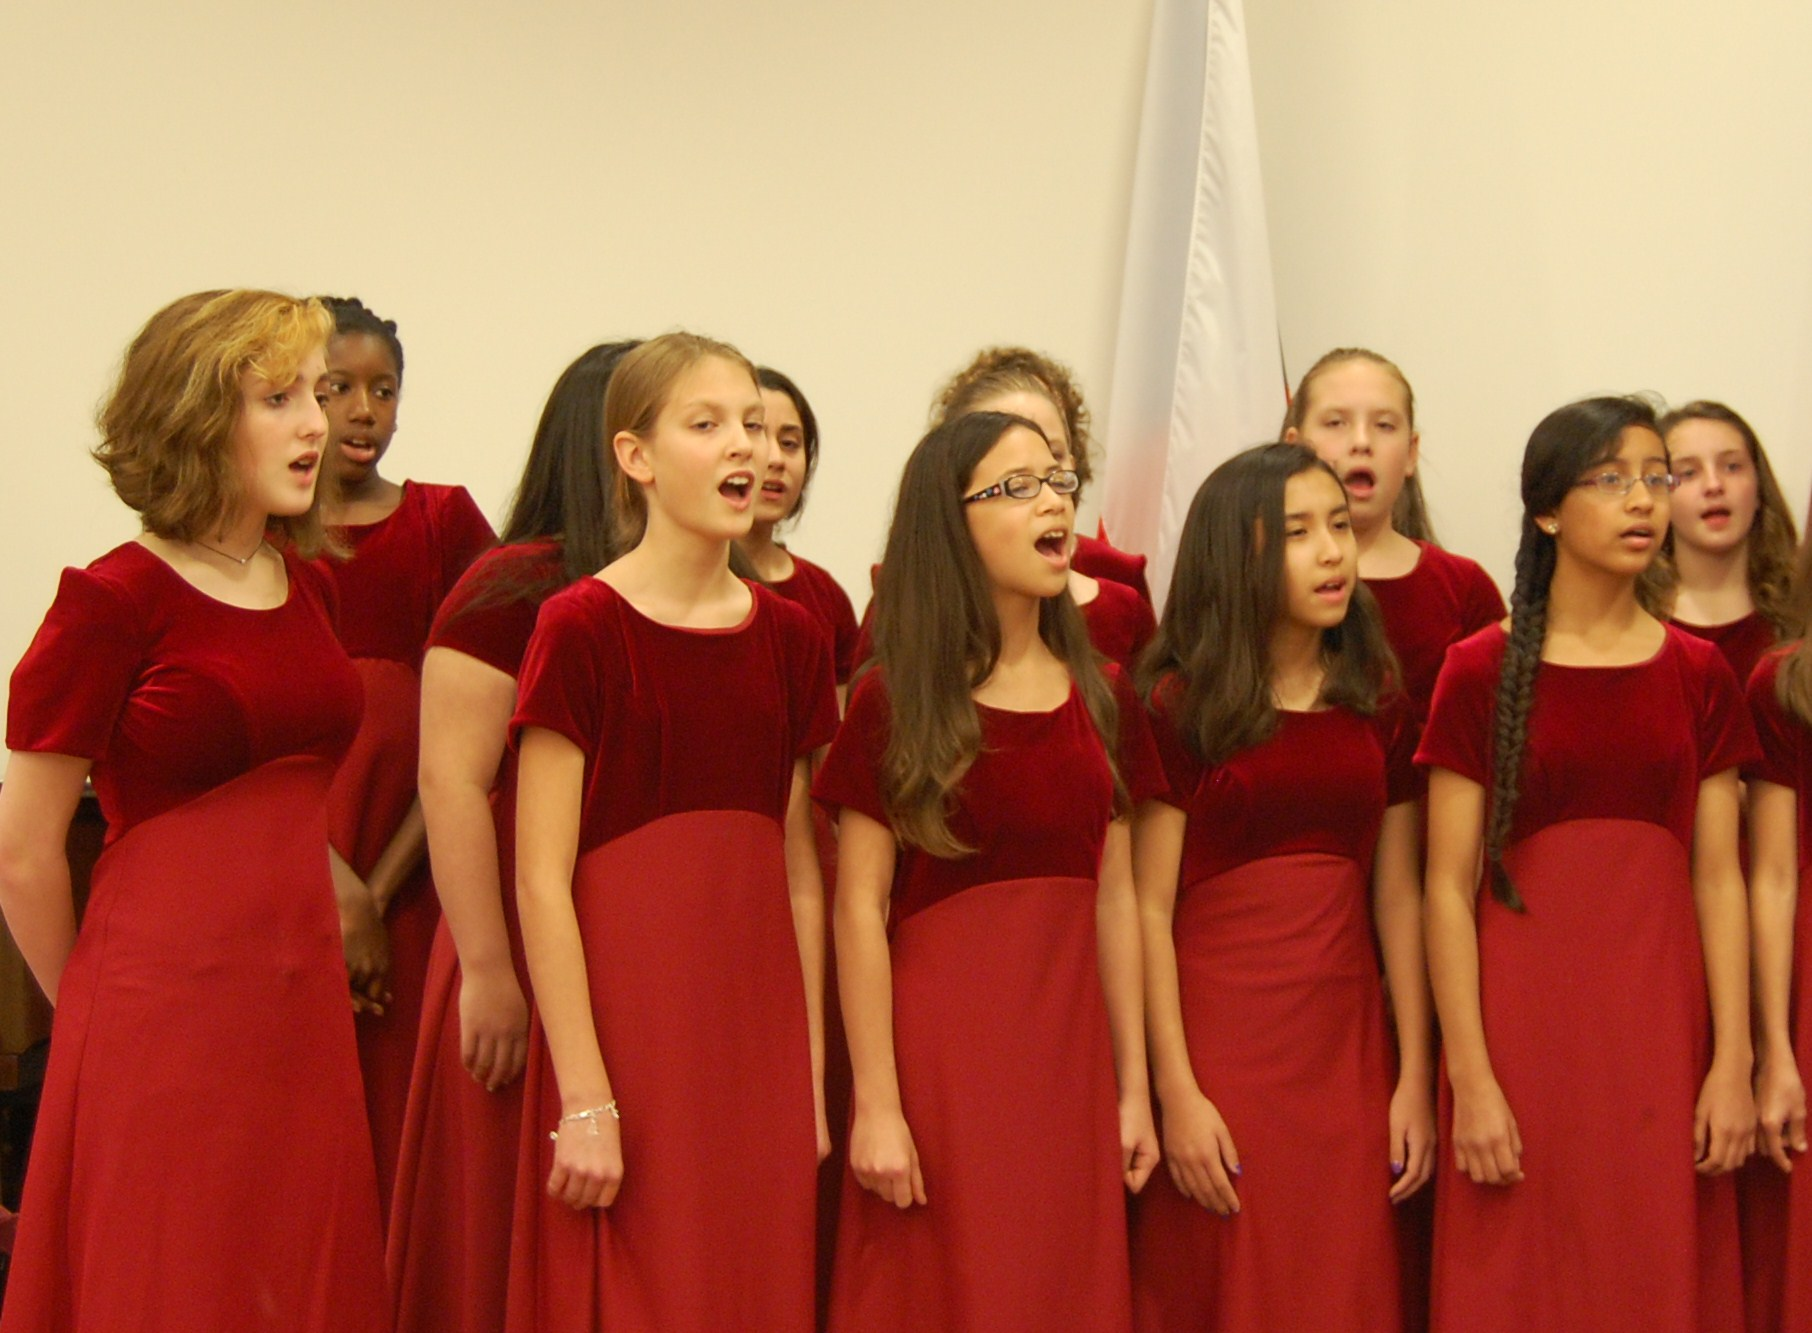 SINGING AT THE CZECH CENTER